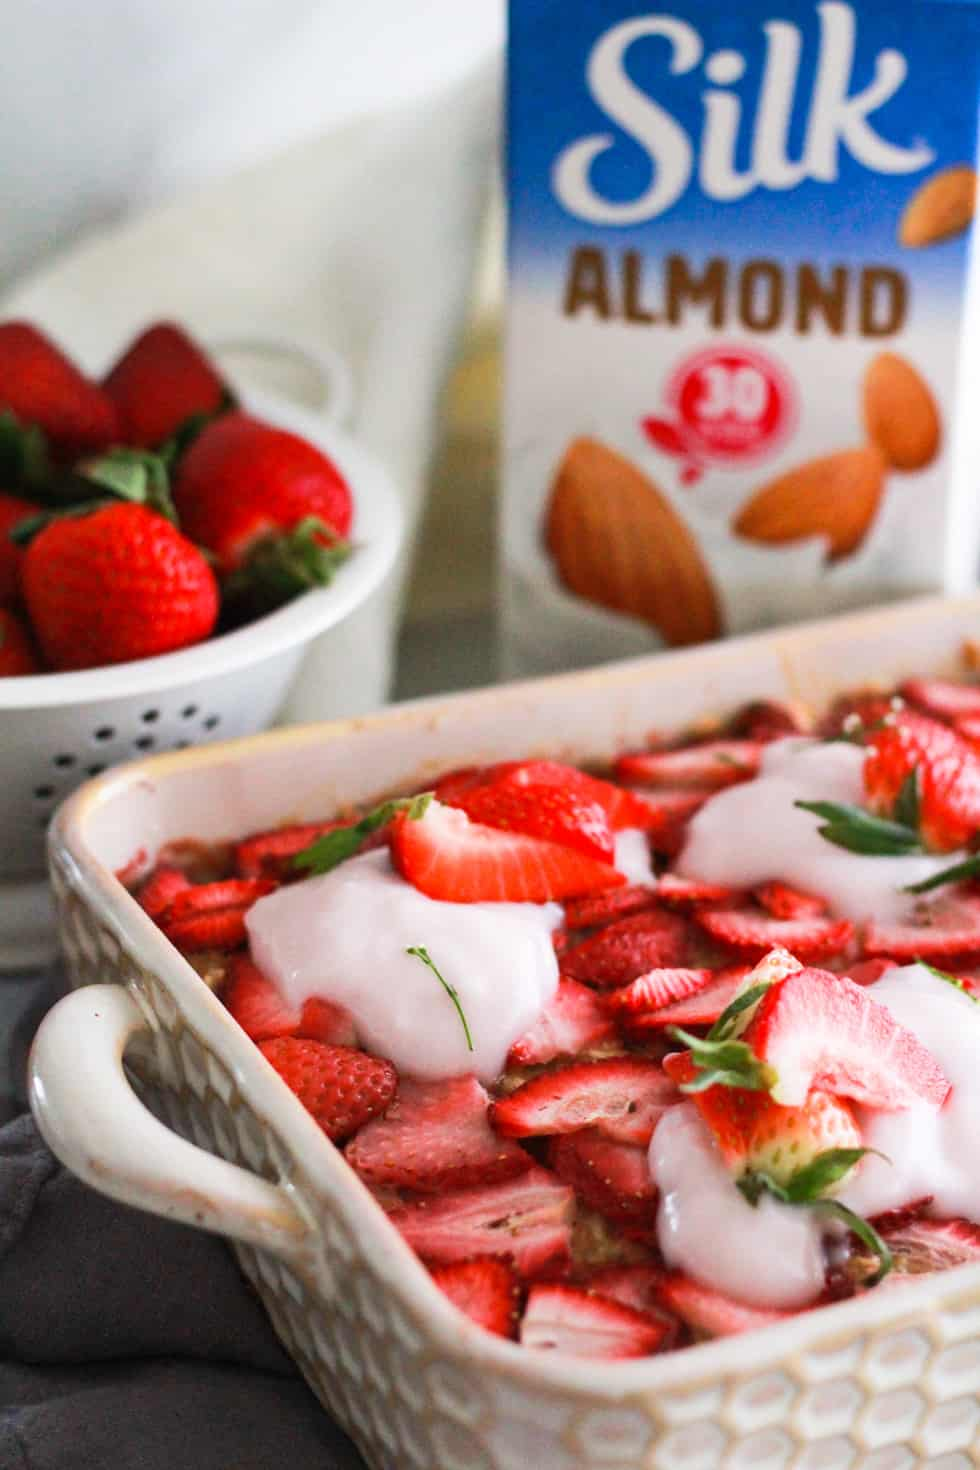 Vegan baked oatmeal in a white dish with fresh strawberries and a carton of Silk almond milk.